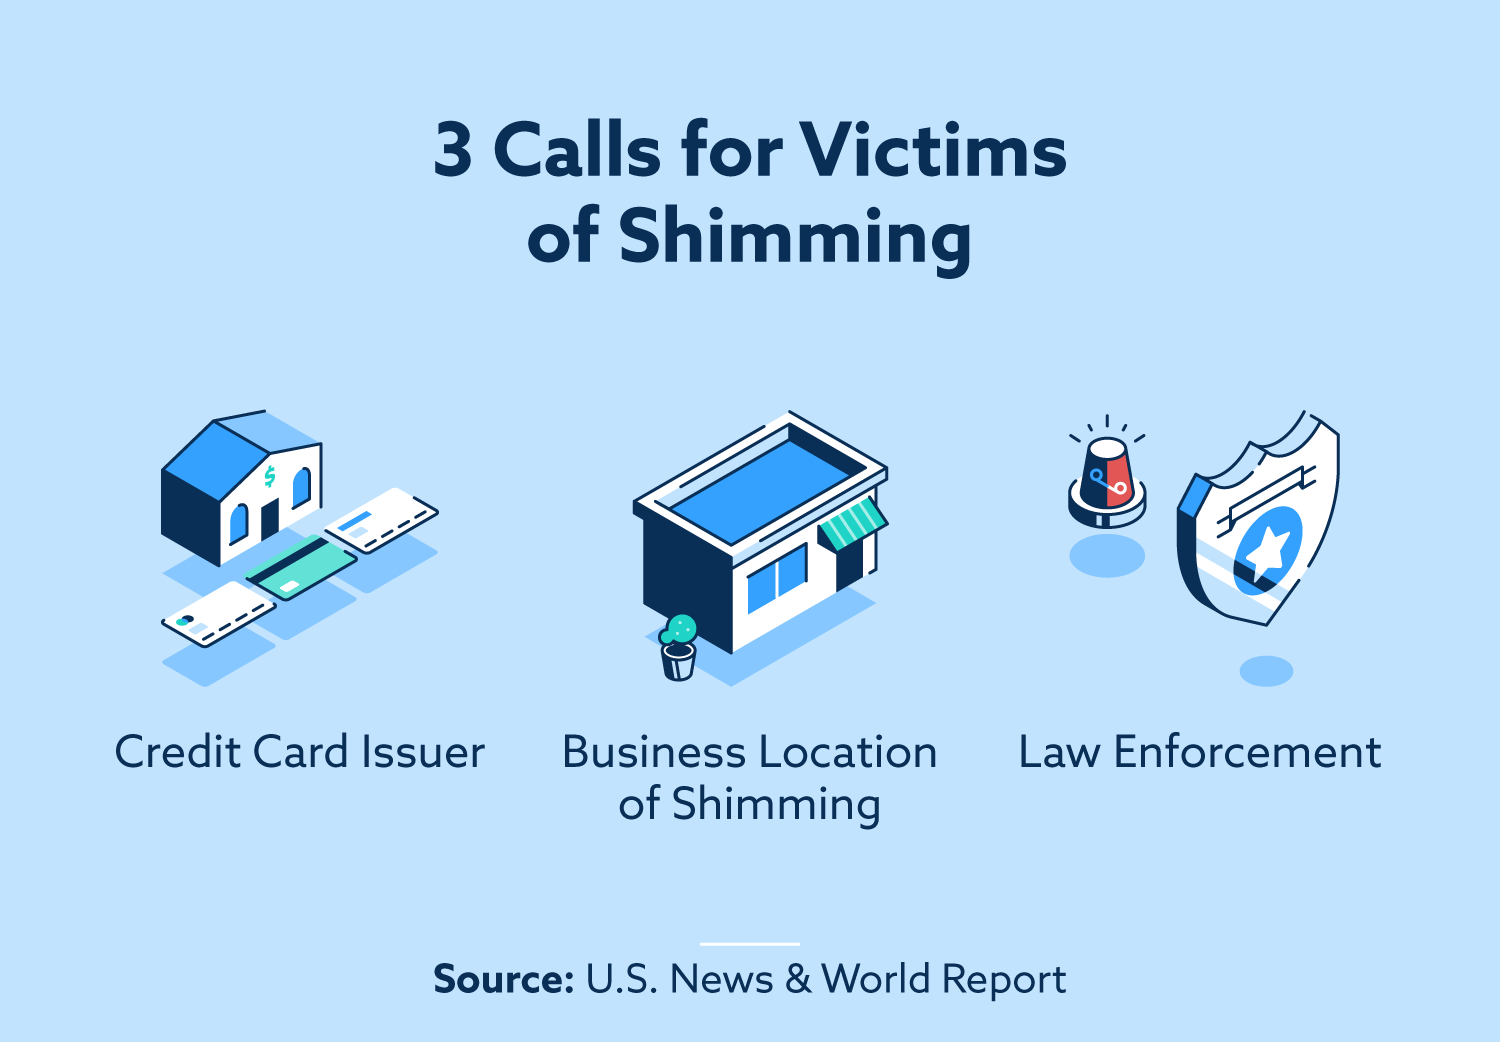 3 Calls for Victims of Shimming: credit card issuer, business location of shimming, law enforcement.